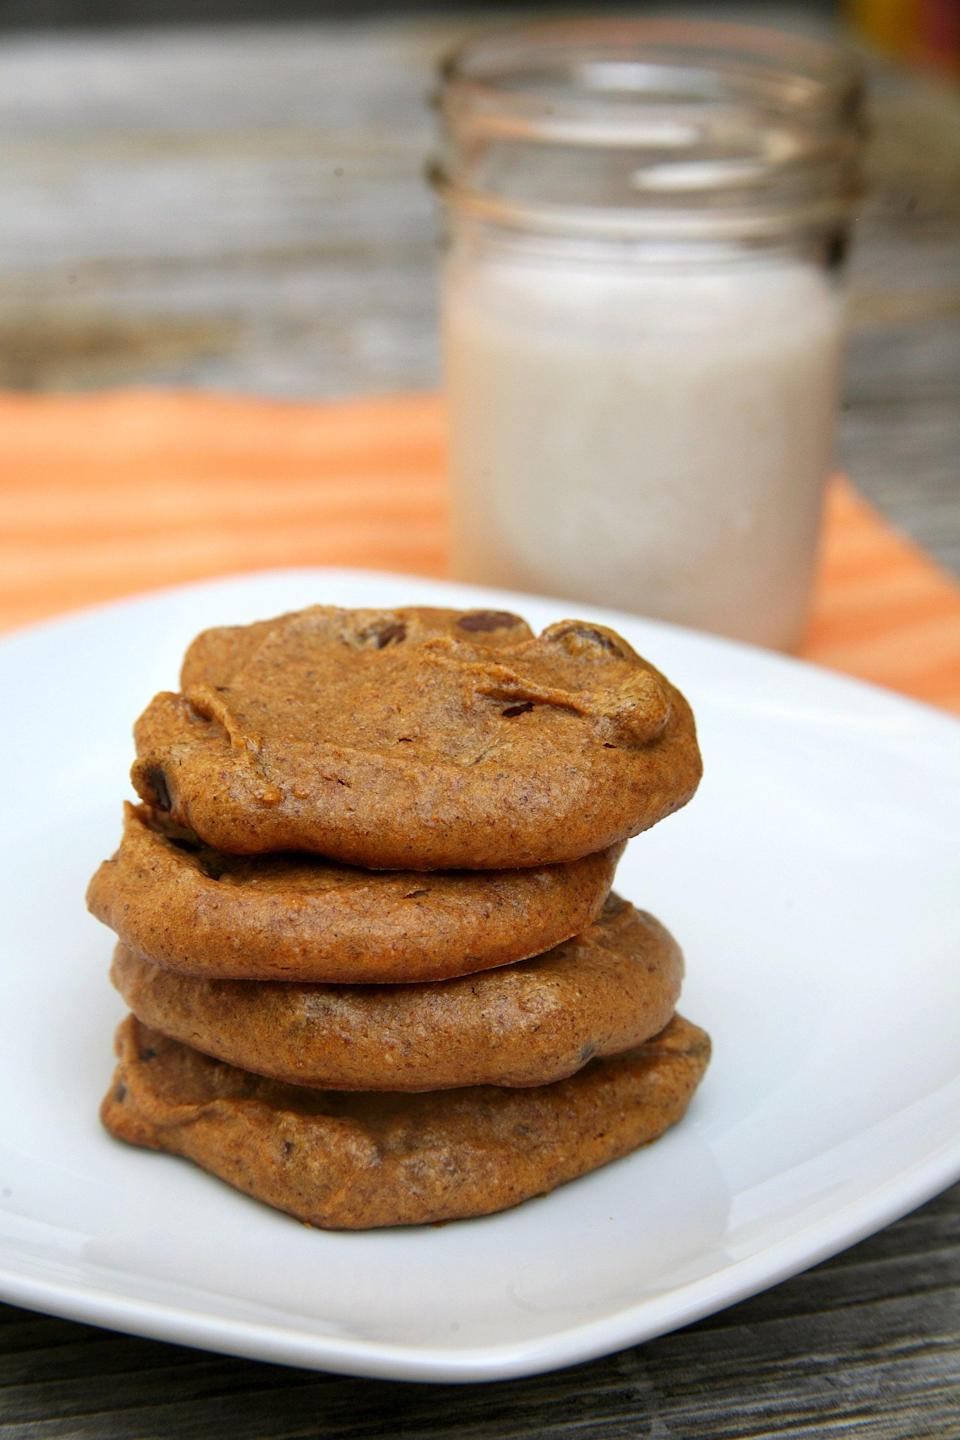 """<p>Soft, chewy, and under 100 calories, these gluten-free cookies are bursting with spiced pumpkin pie flavor. The main ingredient is almond butter, so make sure you have a jar on hand. </p> <p><strong>Get the recipe:</strong> <a href=""""https://www.popsugar.com/fitness/Vegan-Gluten-Free-Pumpkin-Cookies-27884350"""" class=""""link rapid-noclick-resp"""" rel=""""nofollow noopener"""" target=""""_blank"""" data-ylk=""""slk:pumpkin chocolate chip cookies"""">pumpkin chocolate chip cookies</a></p>"""